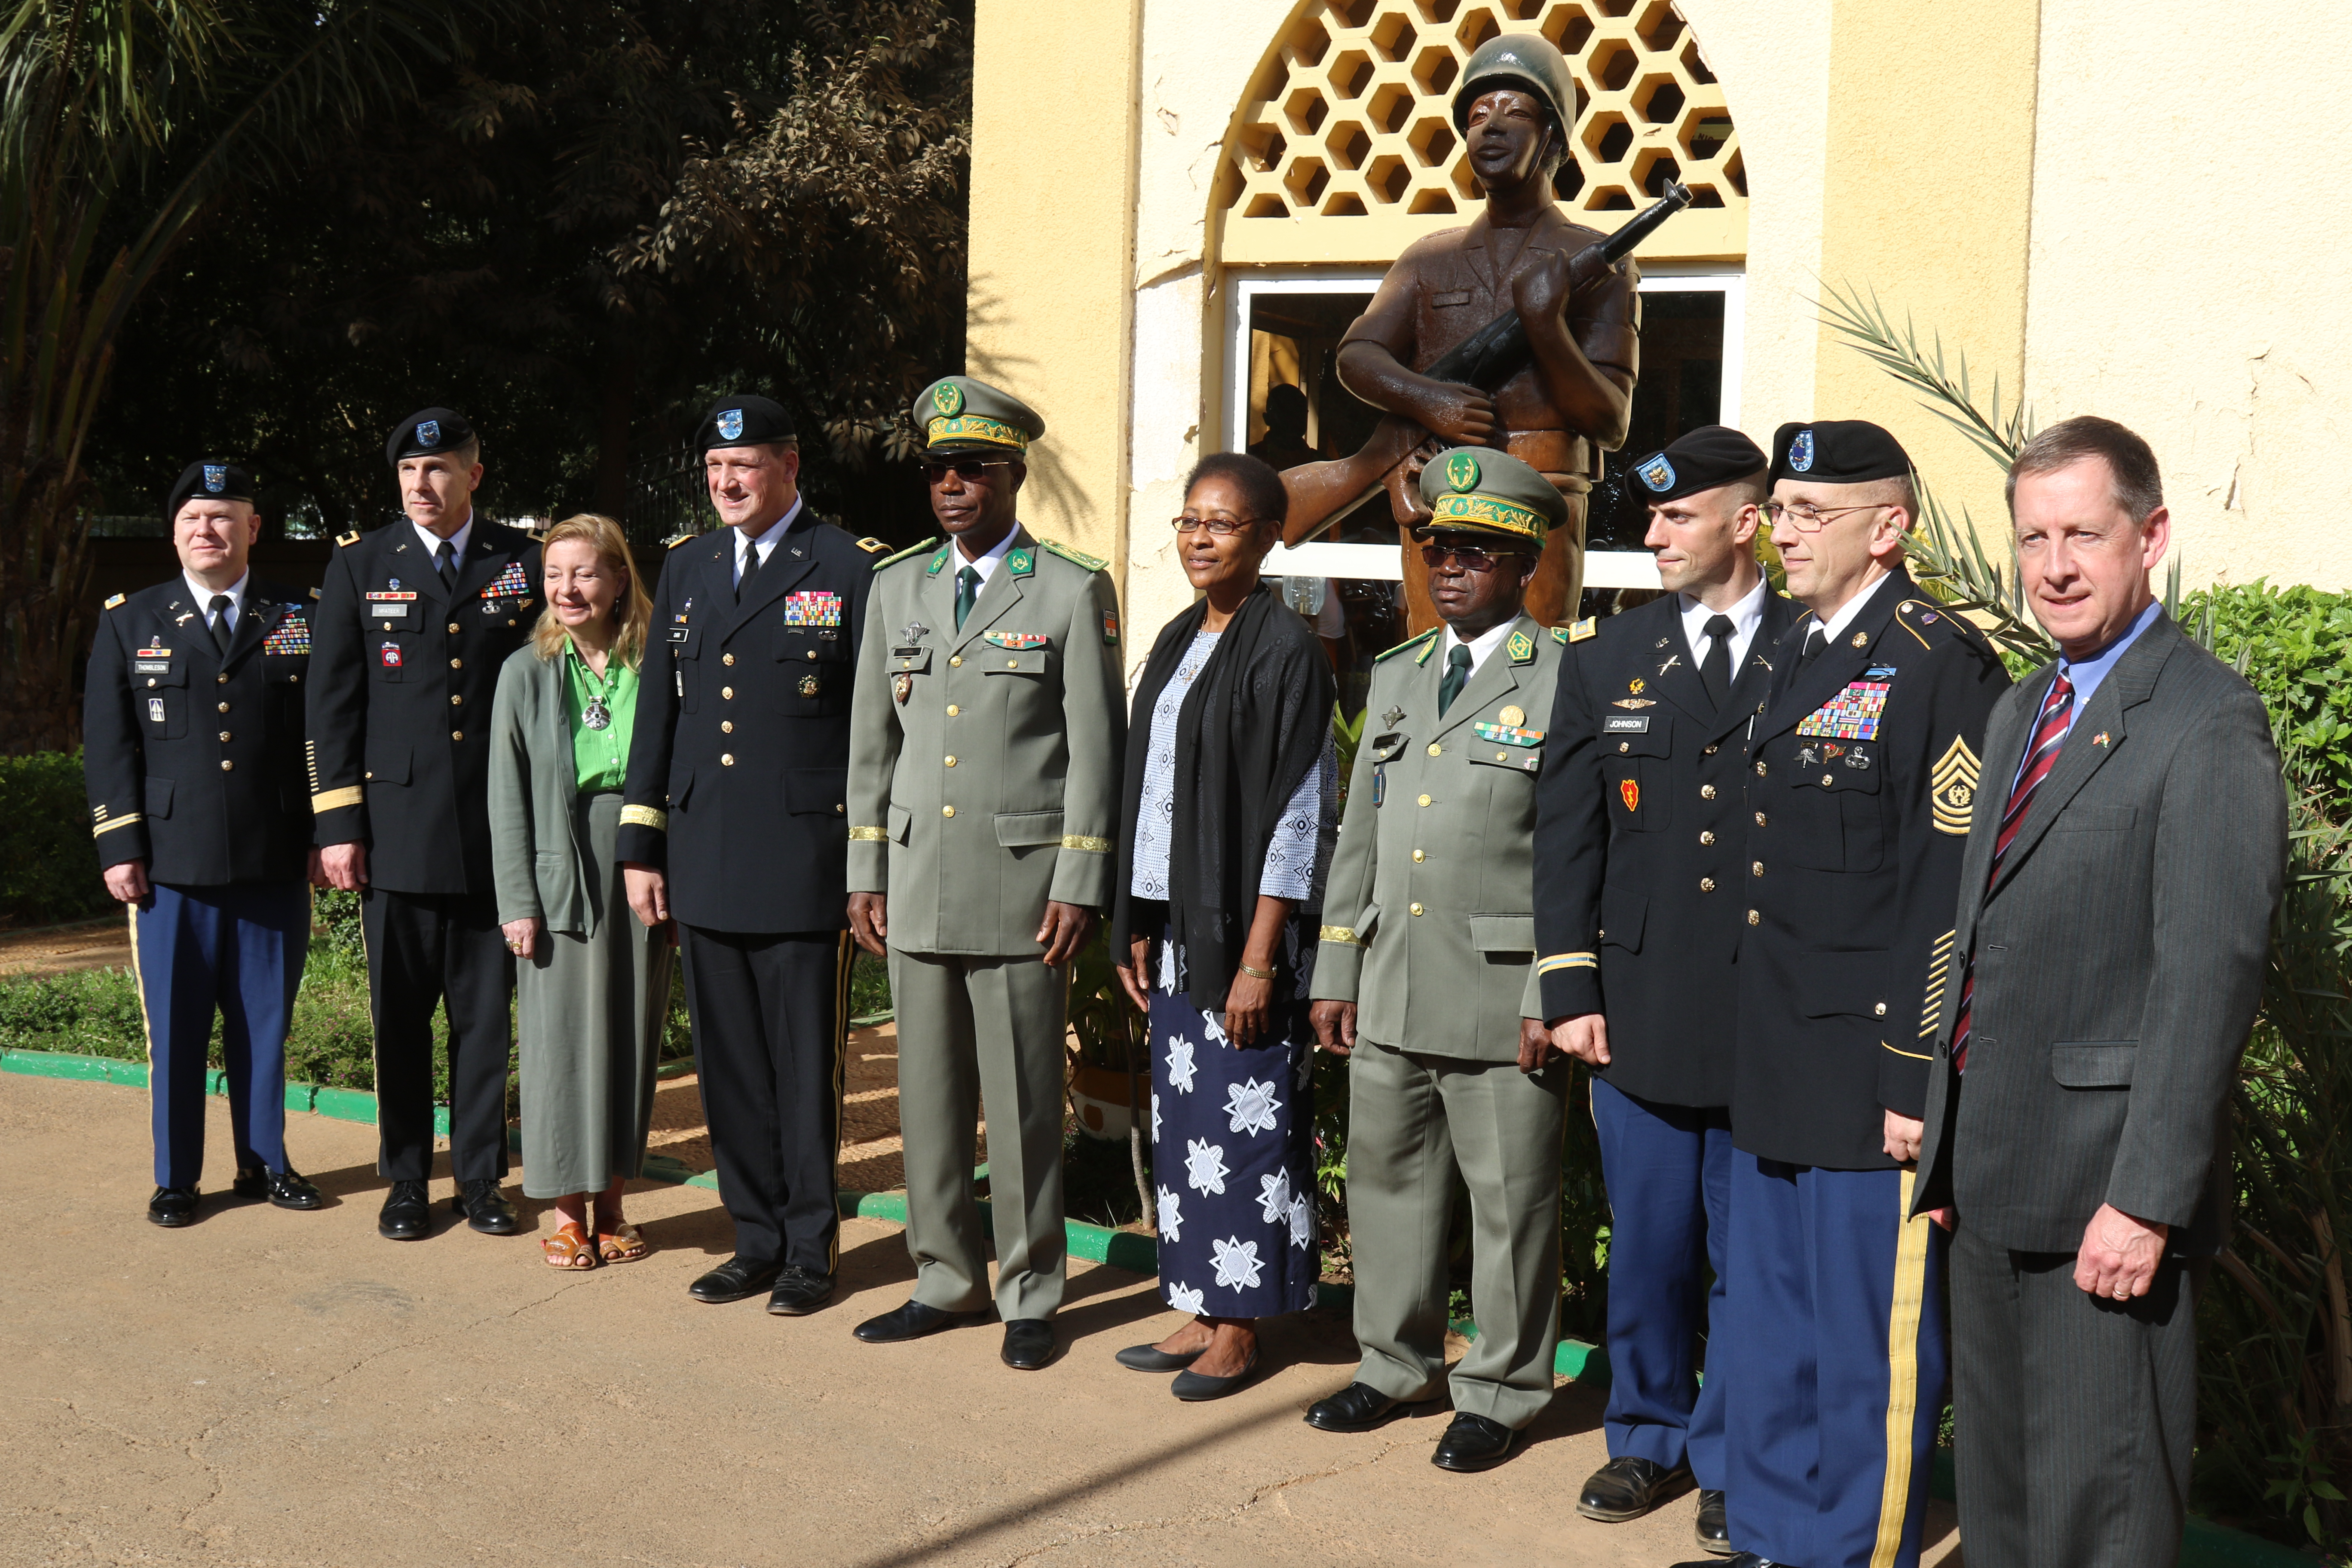 NIAMEY, Niger - Delegates from the Indiana National Guard, the U.S. State Department and the Niger Armed Forces pose for a group photo after the State Partnership signing ceremony in Niamey, Niger. (Photo by Nate Herring, U.S. AFRICOM Public Affairs/Released)